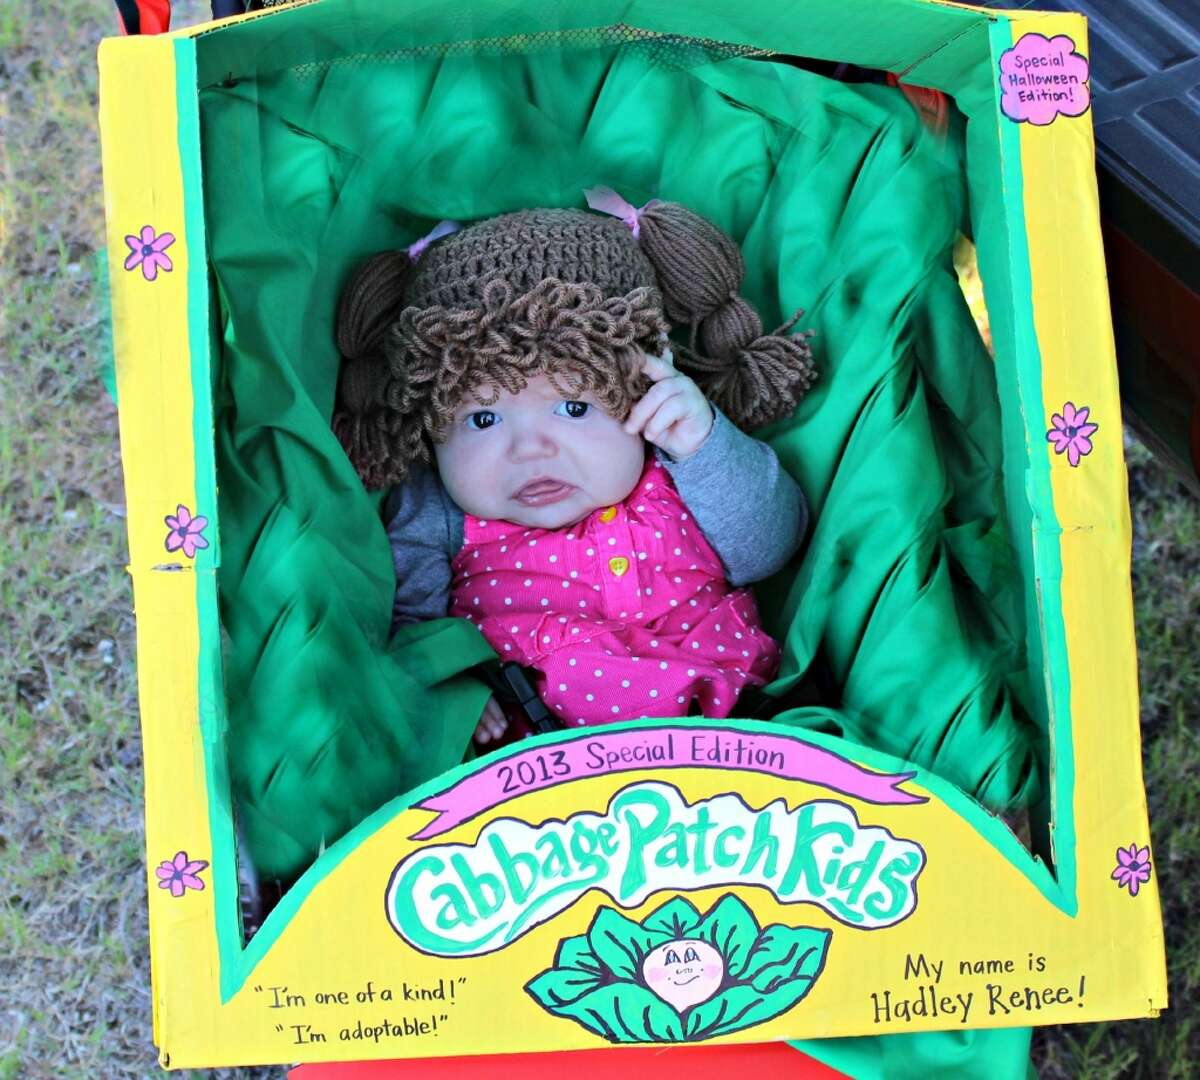 This year for Halloween my 2 1/2 month old daughter, Hadley, is a 2013 Special Halloween Edition Cabbage Patch Kid! :) (Katie Sellars)